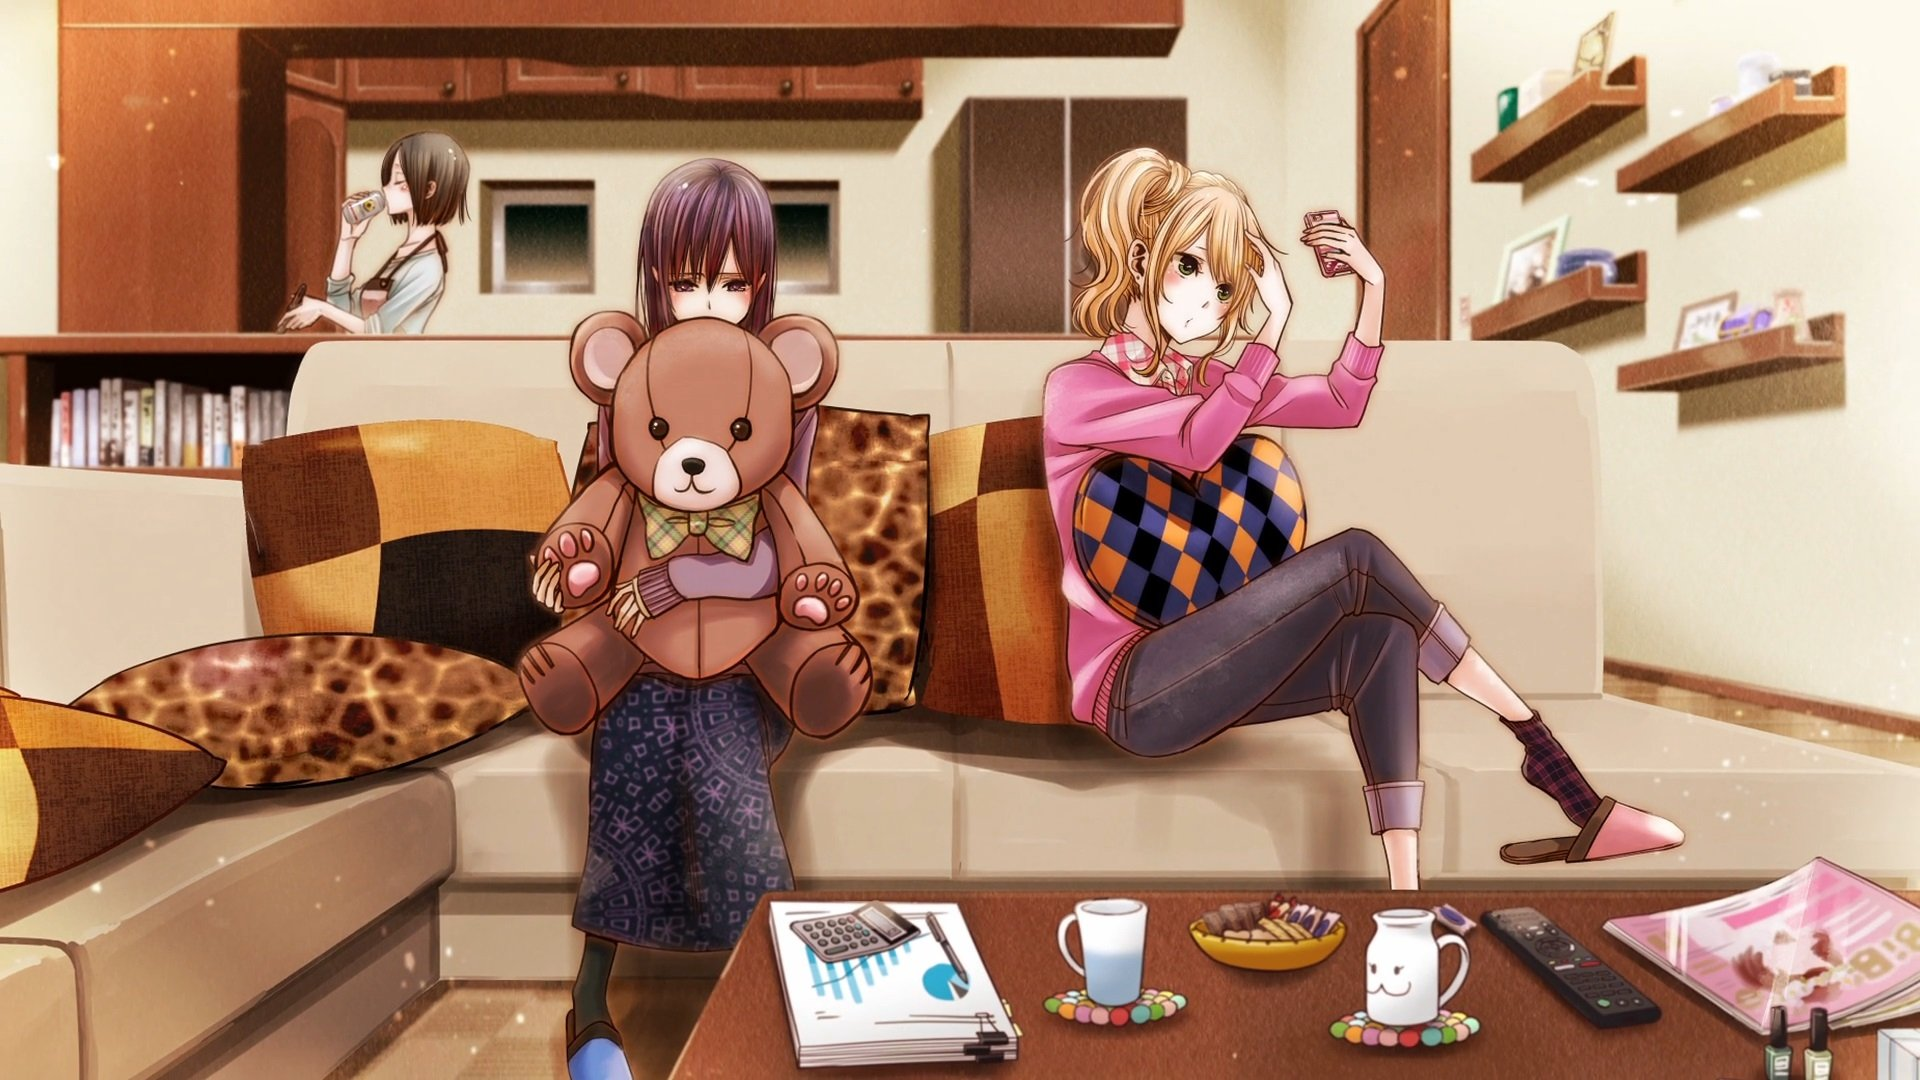 Download 5300 Wallpaper Anime Citrus Hd Gambar Terbaik